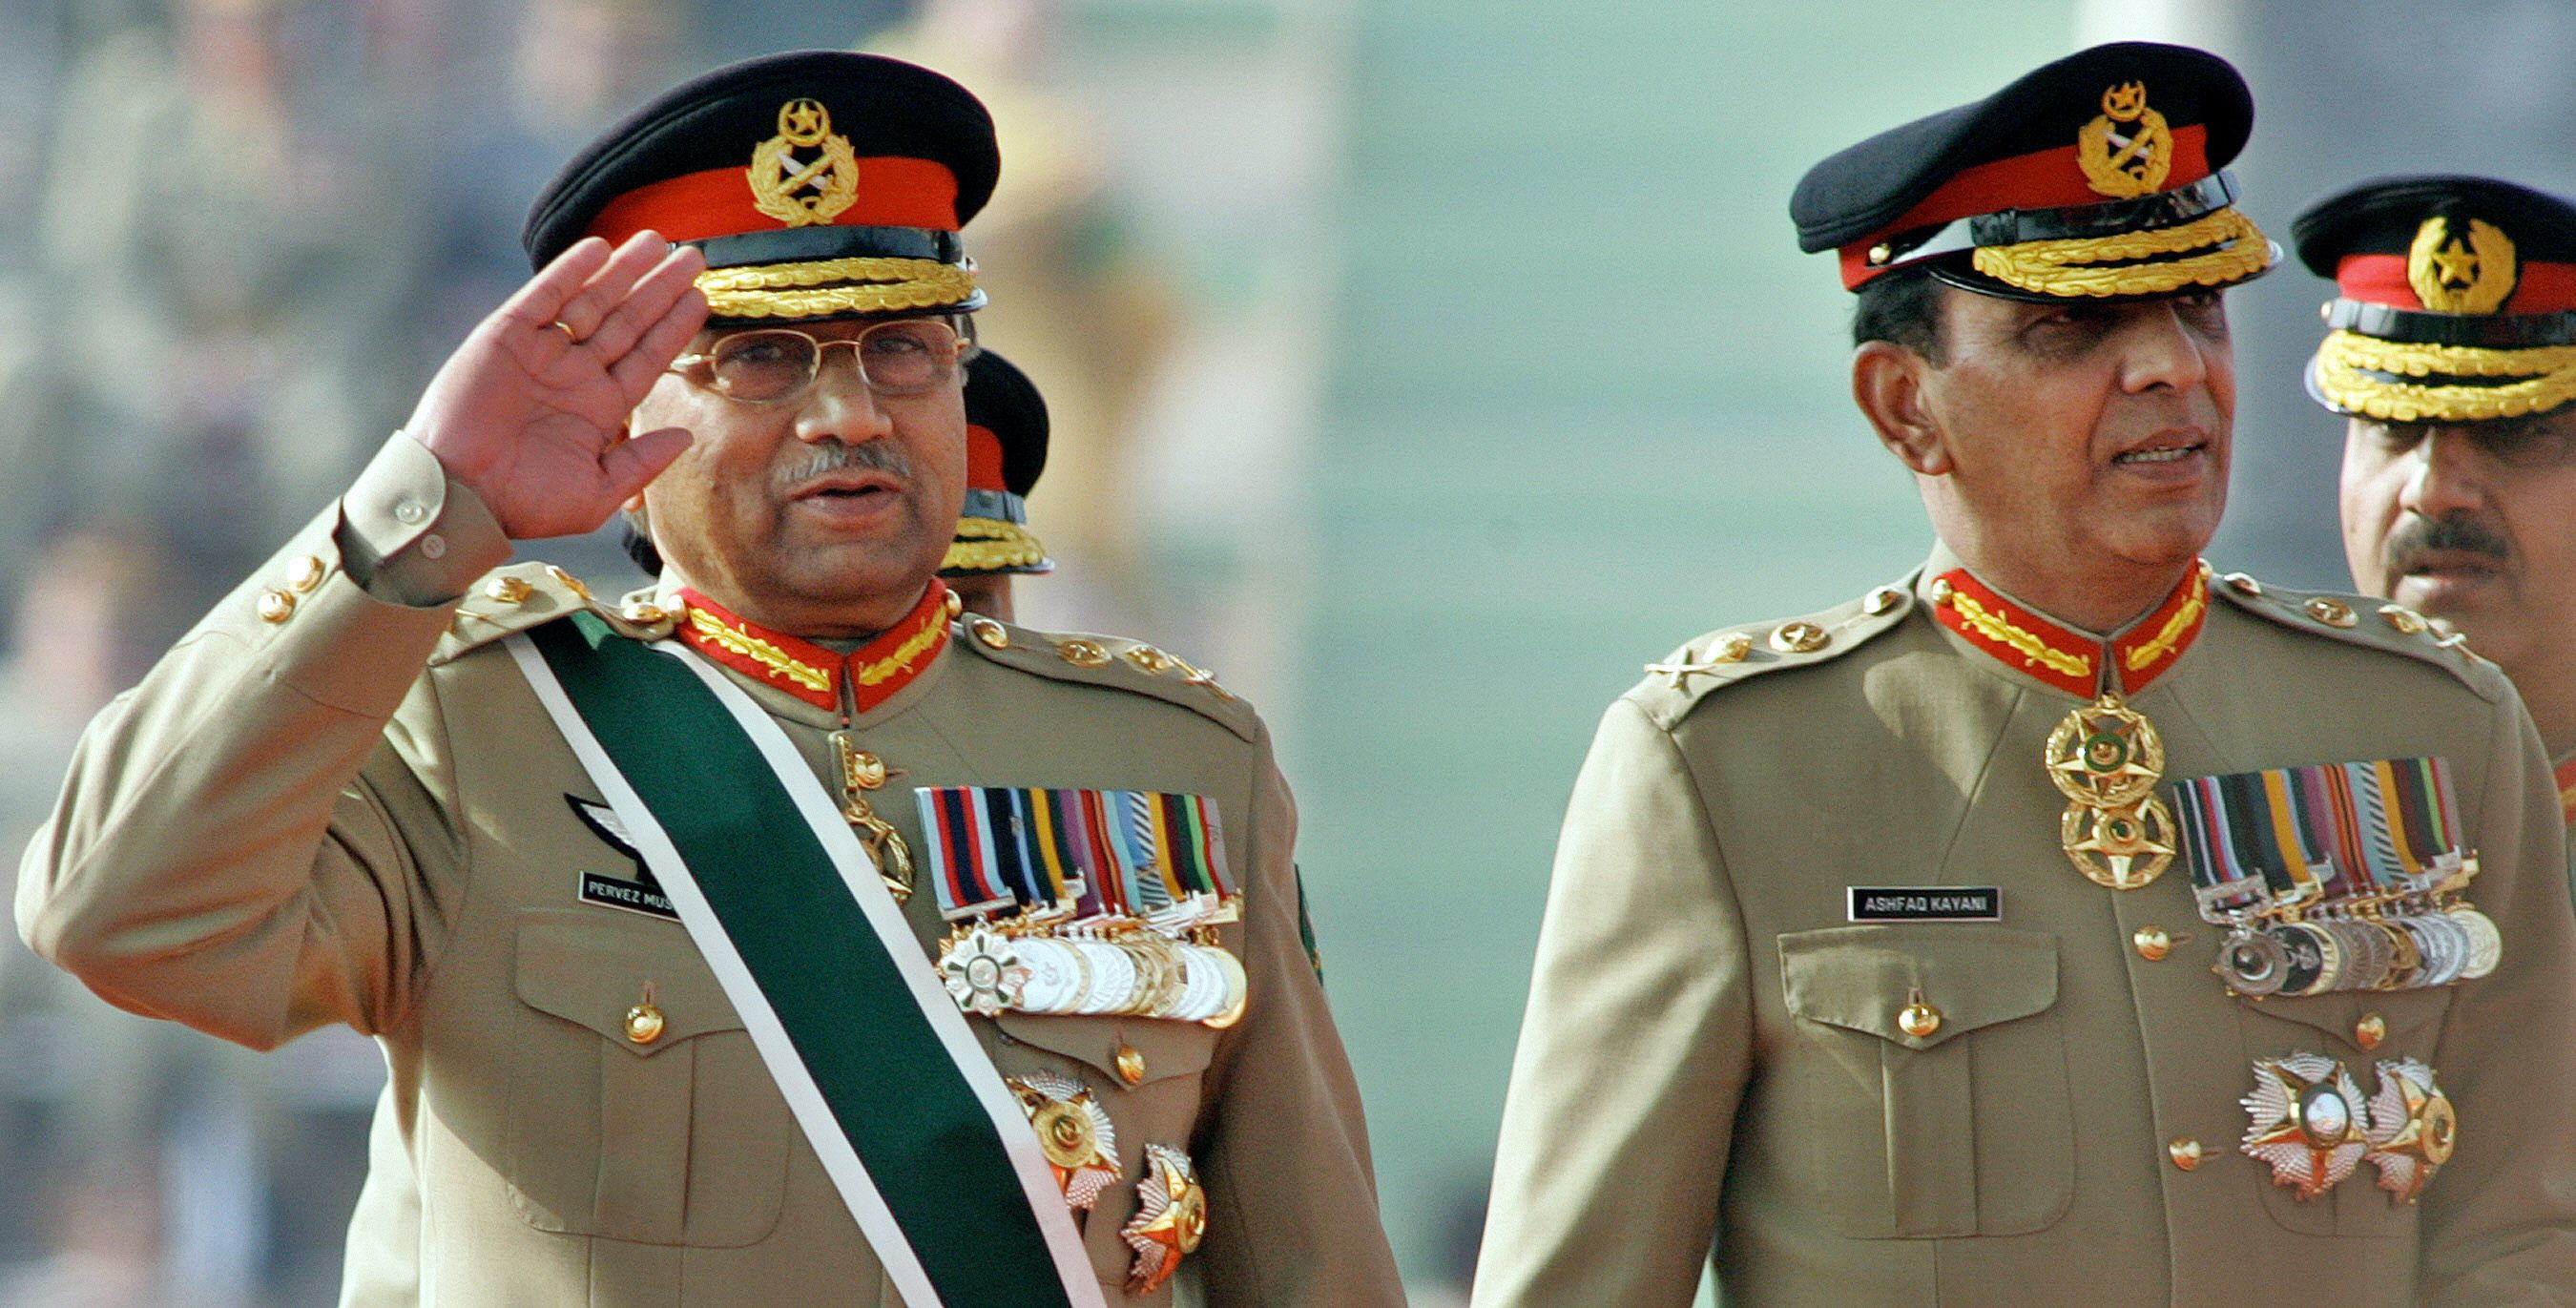 In this photograph taken on November 28, 2007, then President Pervez Musharraf (L) salutes as he arrives with then newly appointed army chief General Ashfaq Kiyani during the change of command ceremony in Rawalpindi.